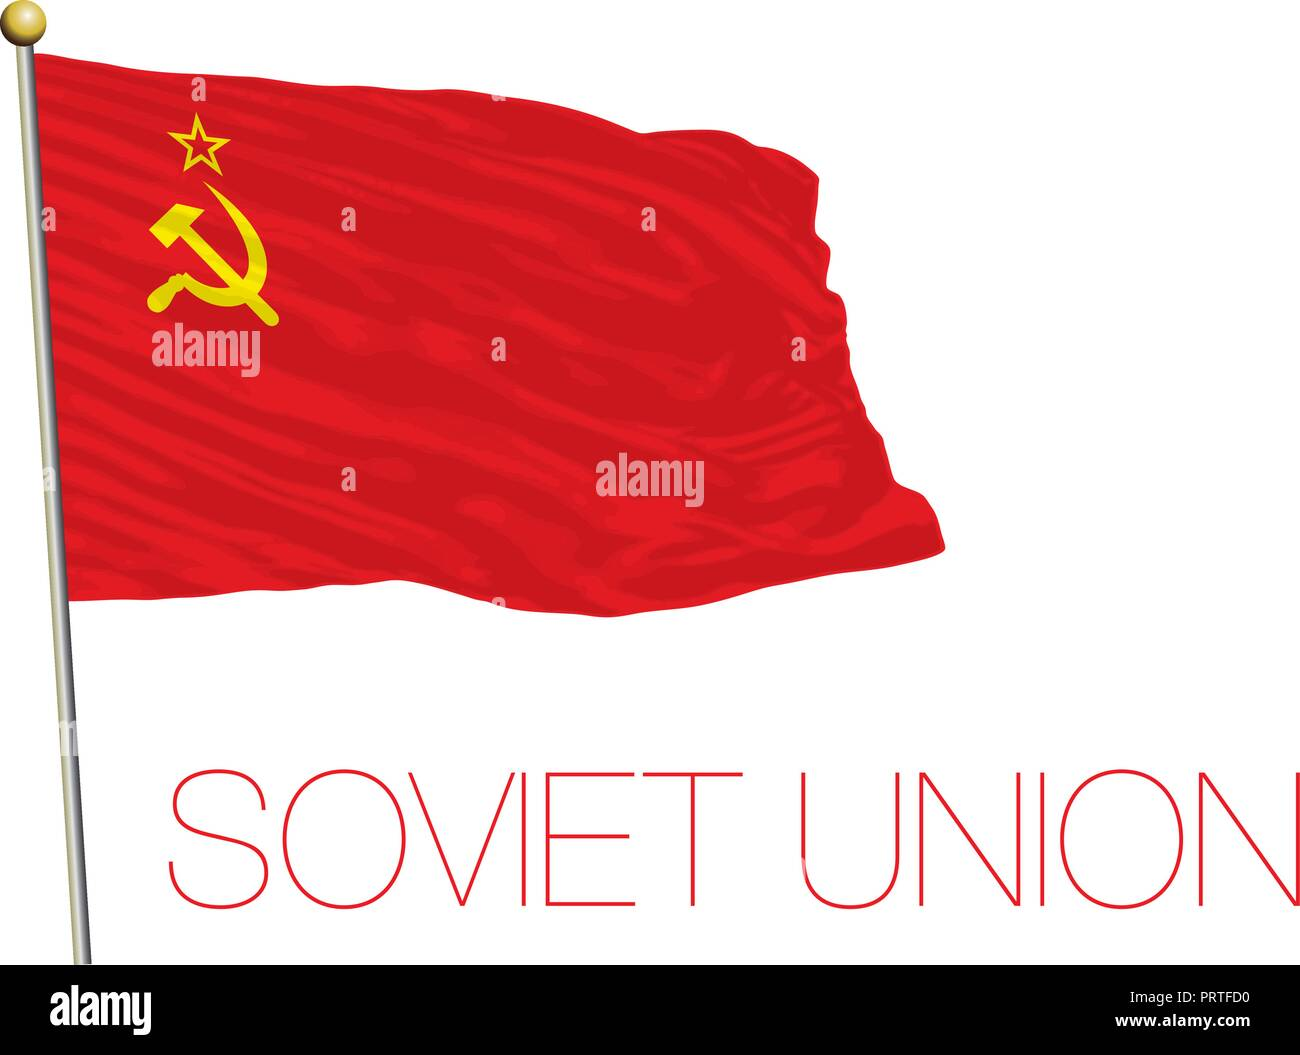 Soviet Union, USSR official and historical flag, vector illustration - Stock Image